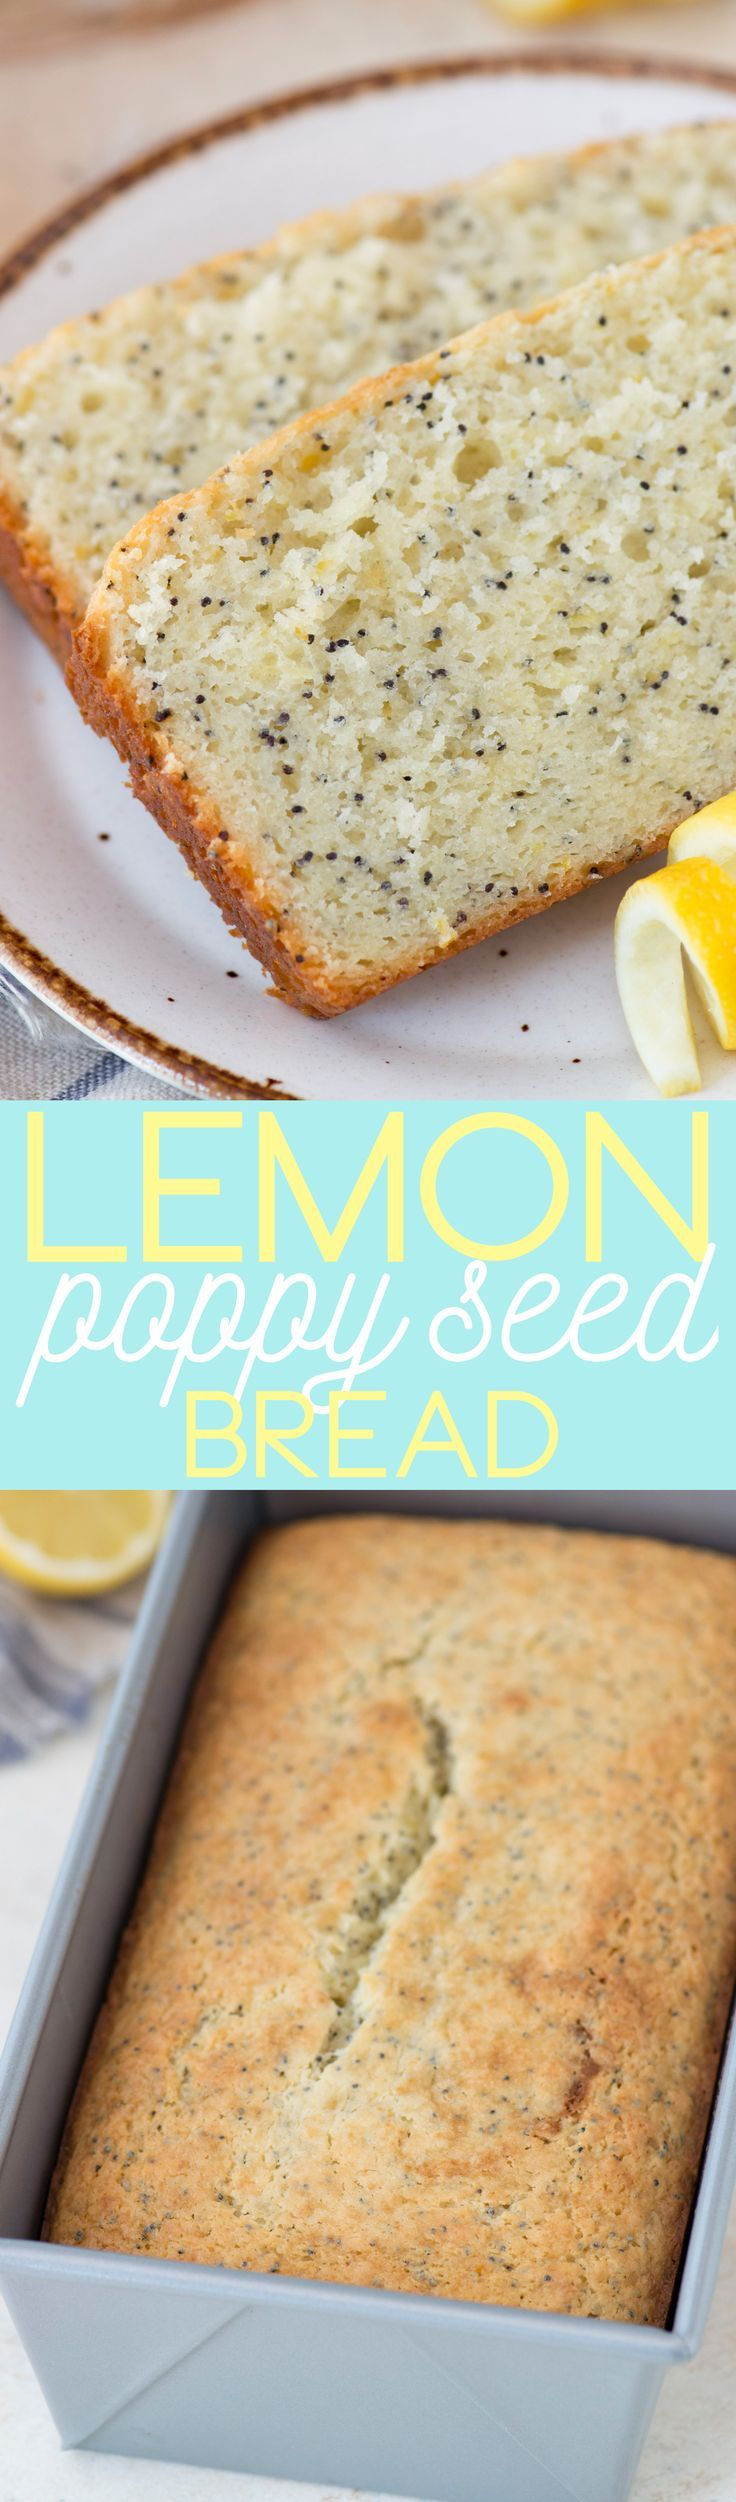 Easy lemon poppy seed bread recipe - 10 minutes to prep and less than an hour to bake! With option to add lemon glaze.